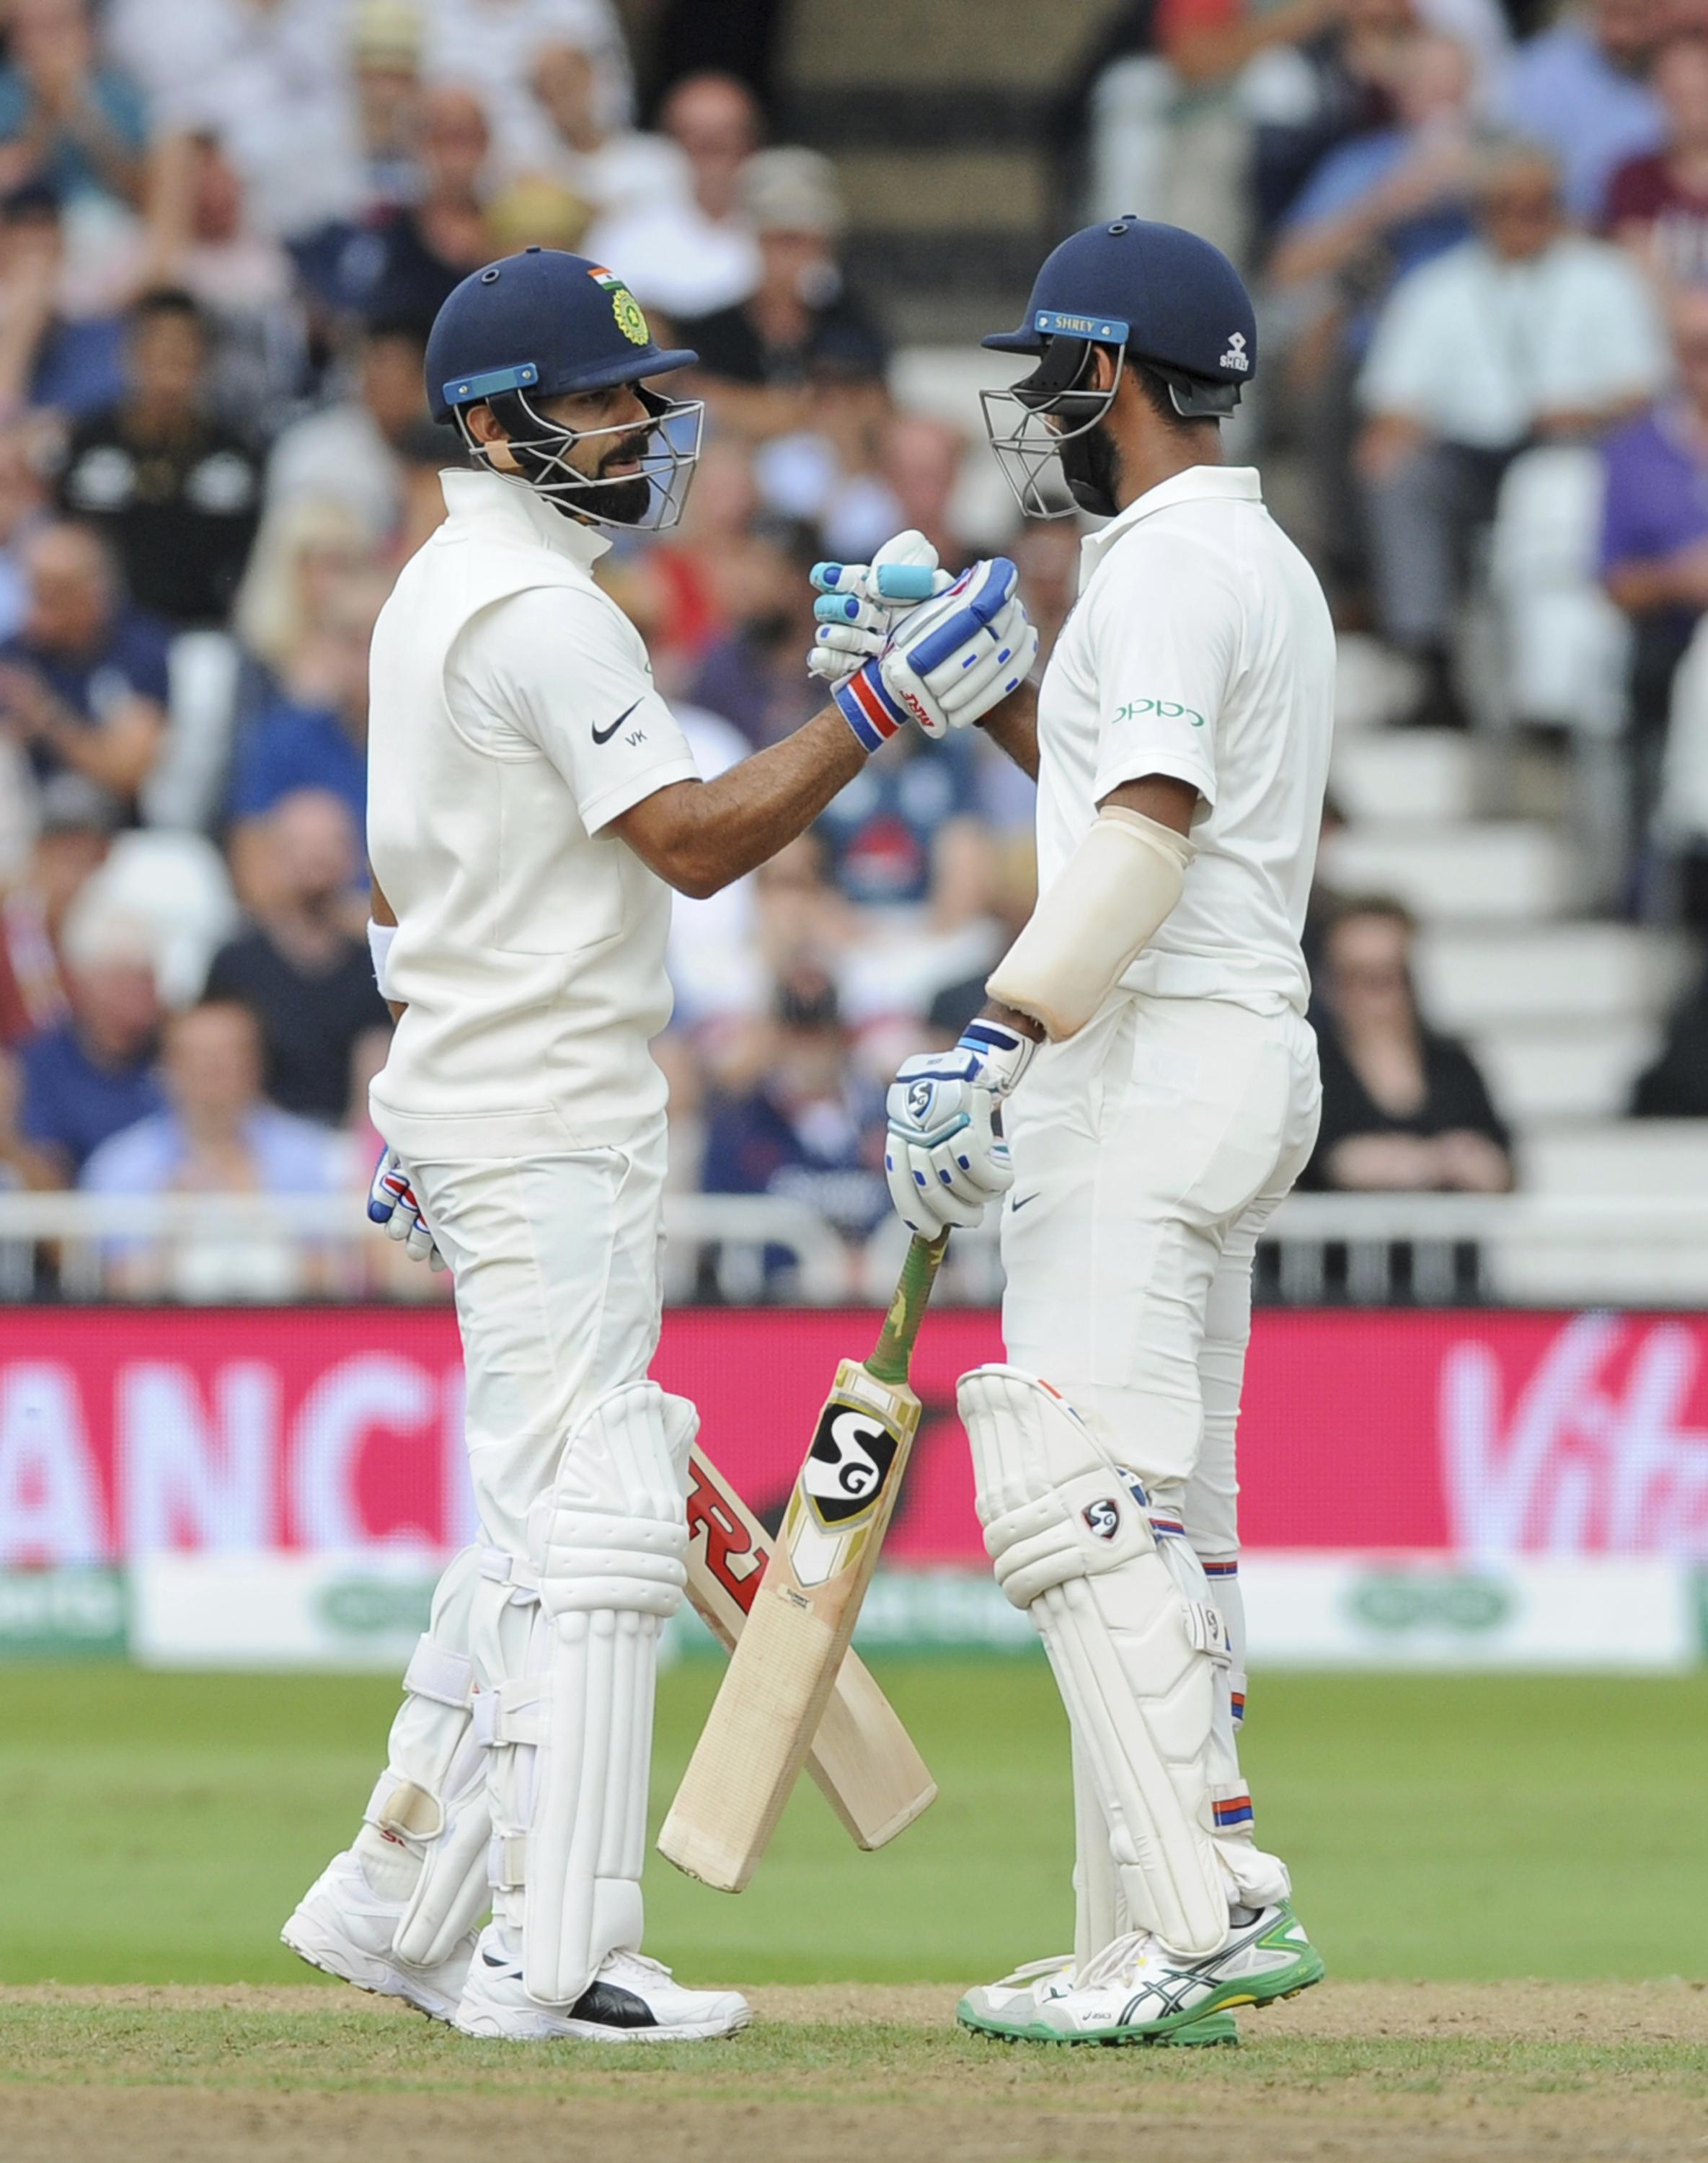 England vs India provided a little piece of Test cricketing history